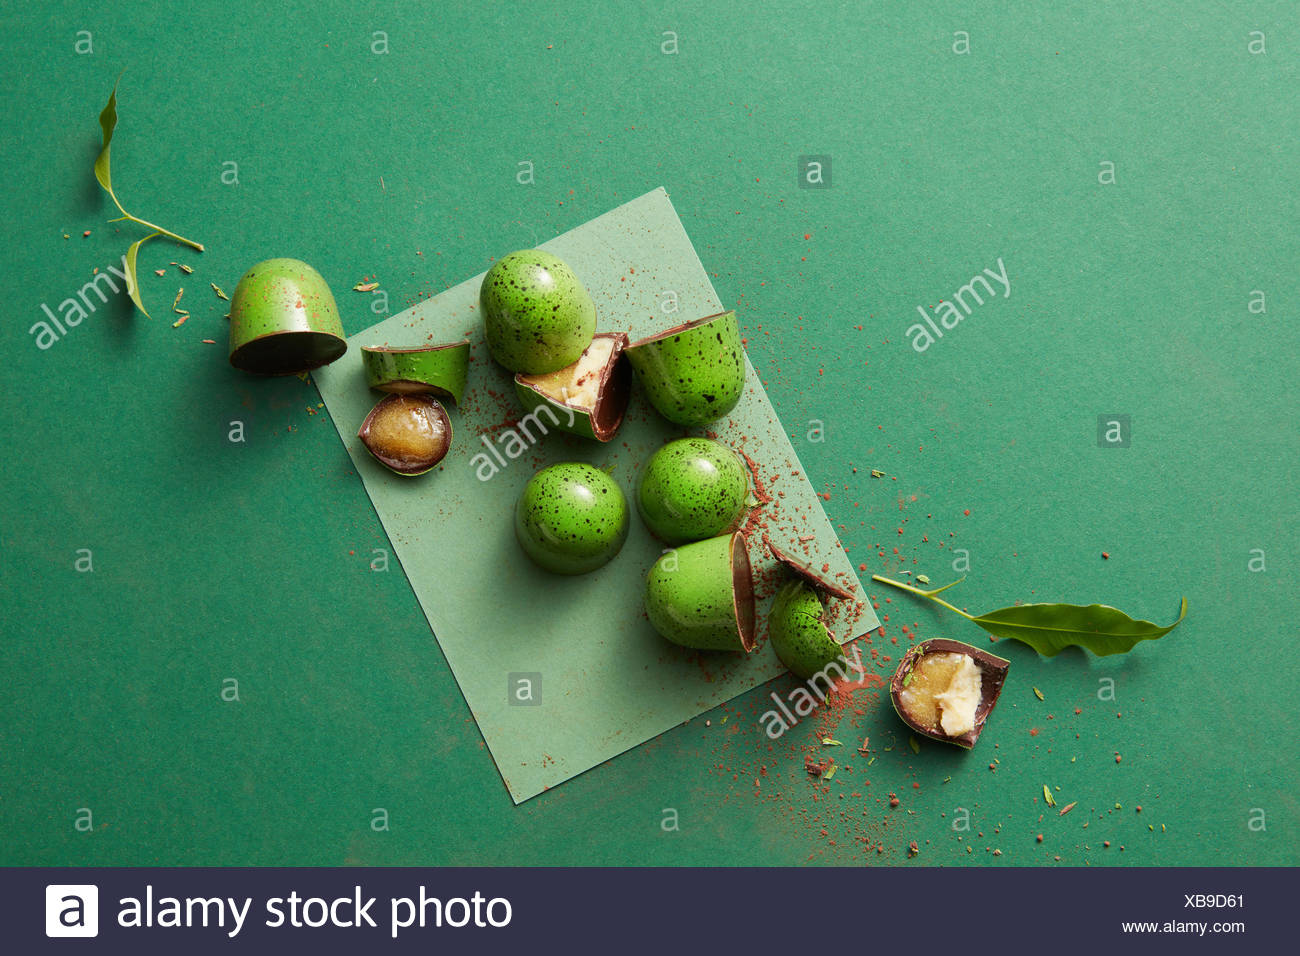 candy green chocolate - Stock Image